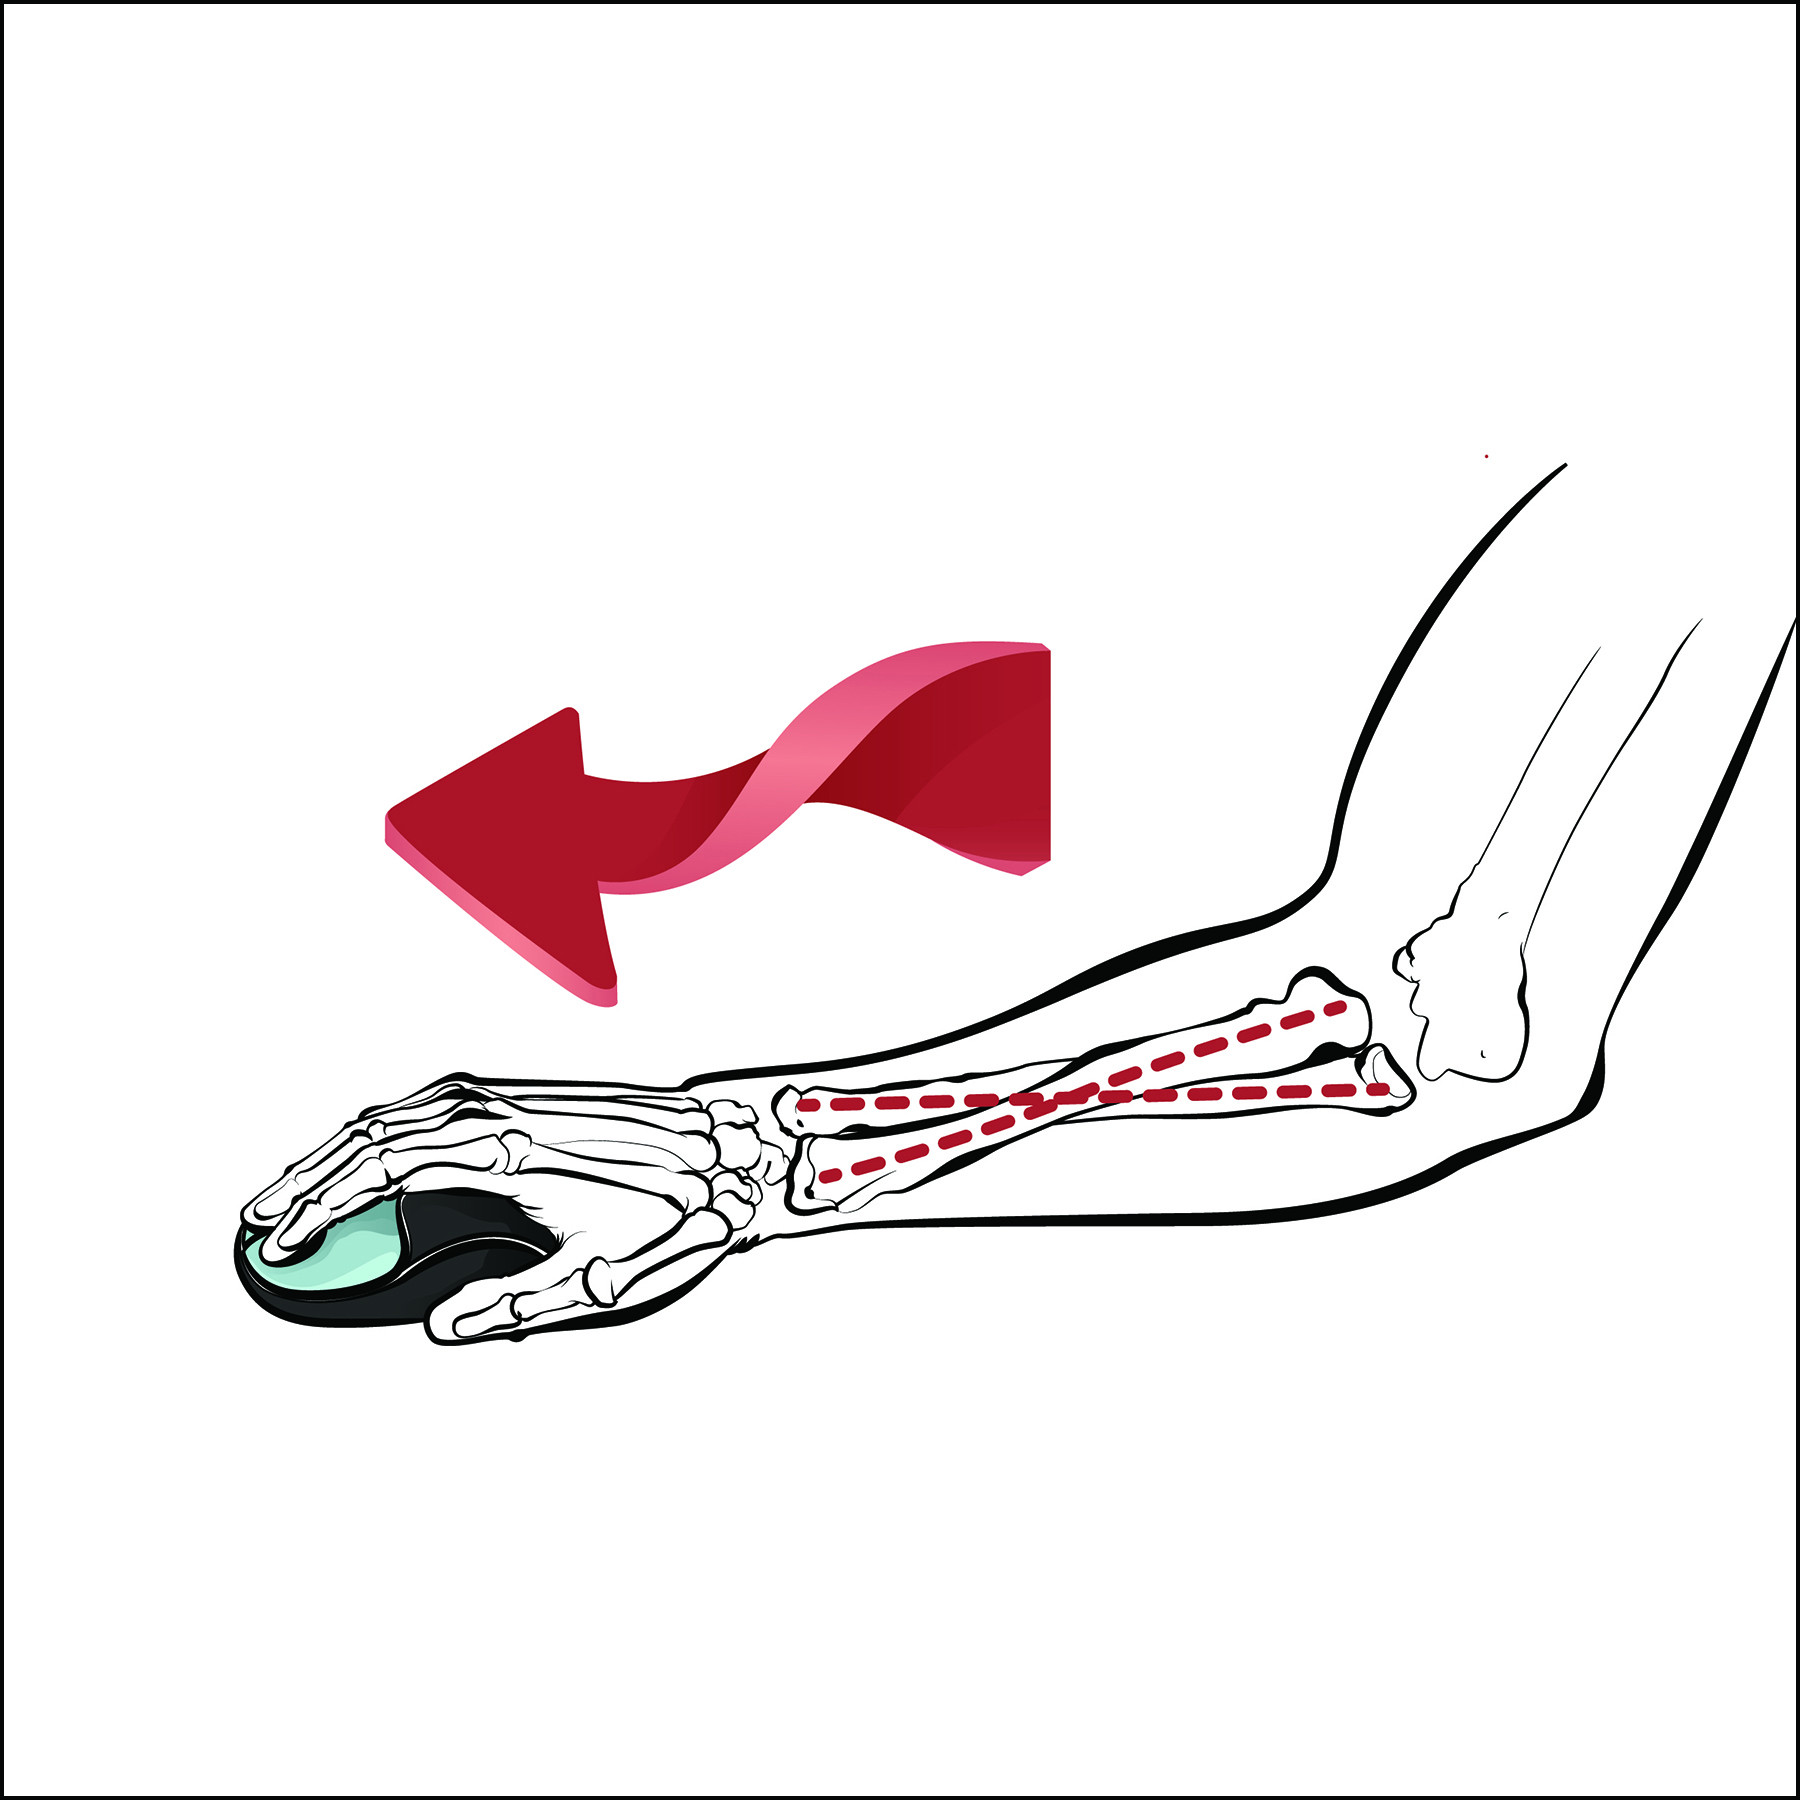 c24d8722a80 Mouse design influences the forearm position - a standard mouse requires  the hand to be held in a pronated position.